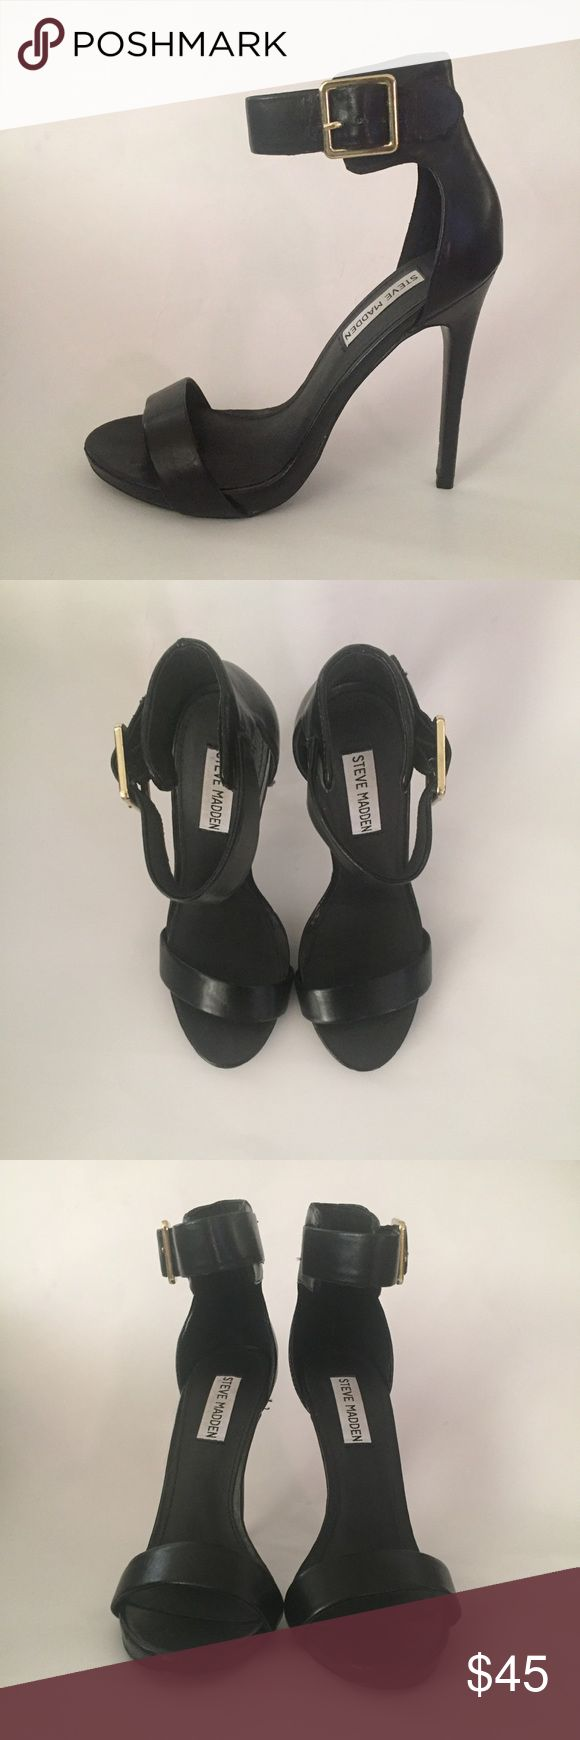 Marlenee Steve Madden black heels Cute and elegant black strap heels. Never used just used to try on. Tiny ding on one of the heels from storage. In Excellent condition. Steve Madden Shoes Heels